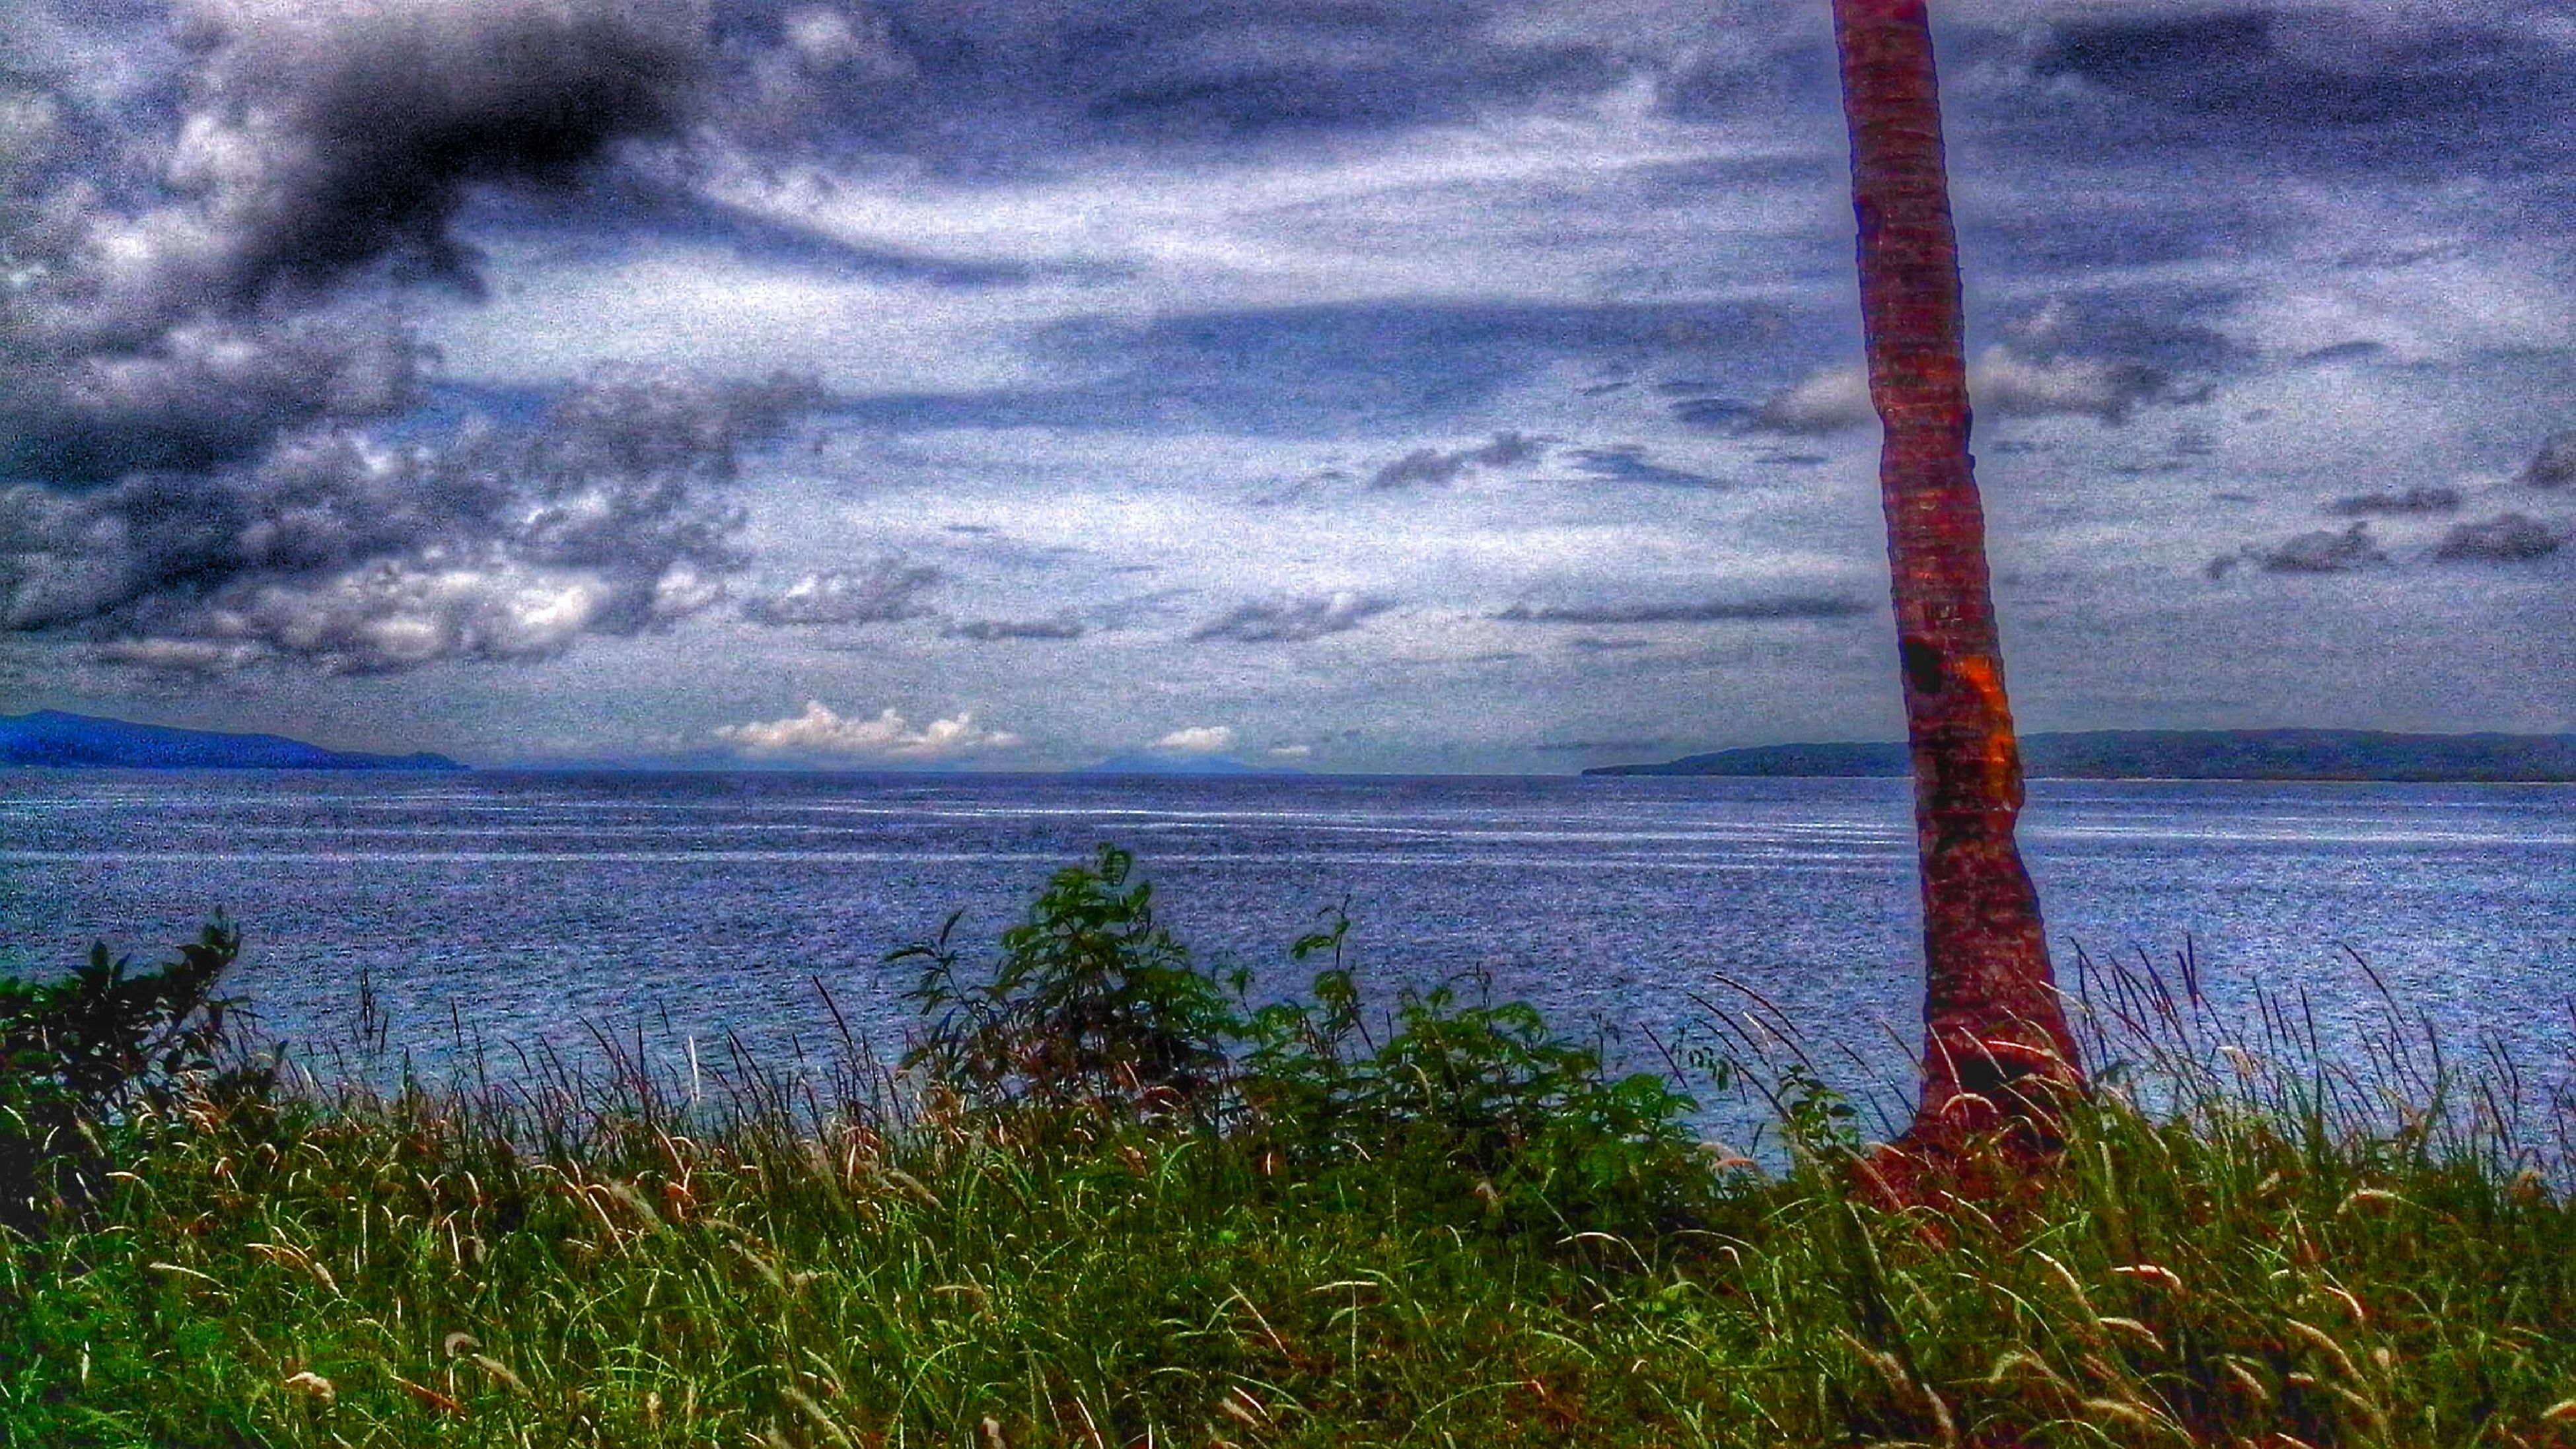 water, sea, horizon over water, tranquil scene, sky, tranquility, scenics, beauty in nature, nature, cloud - sky, grass, growth, cloudy, plant, idyllic, beach, cloud, shore, remote, non-urban scene